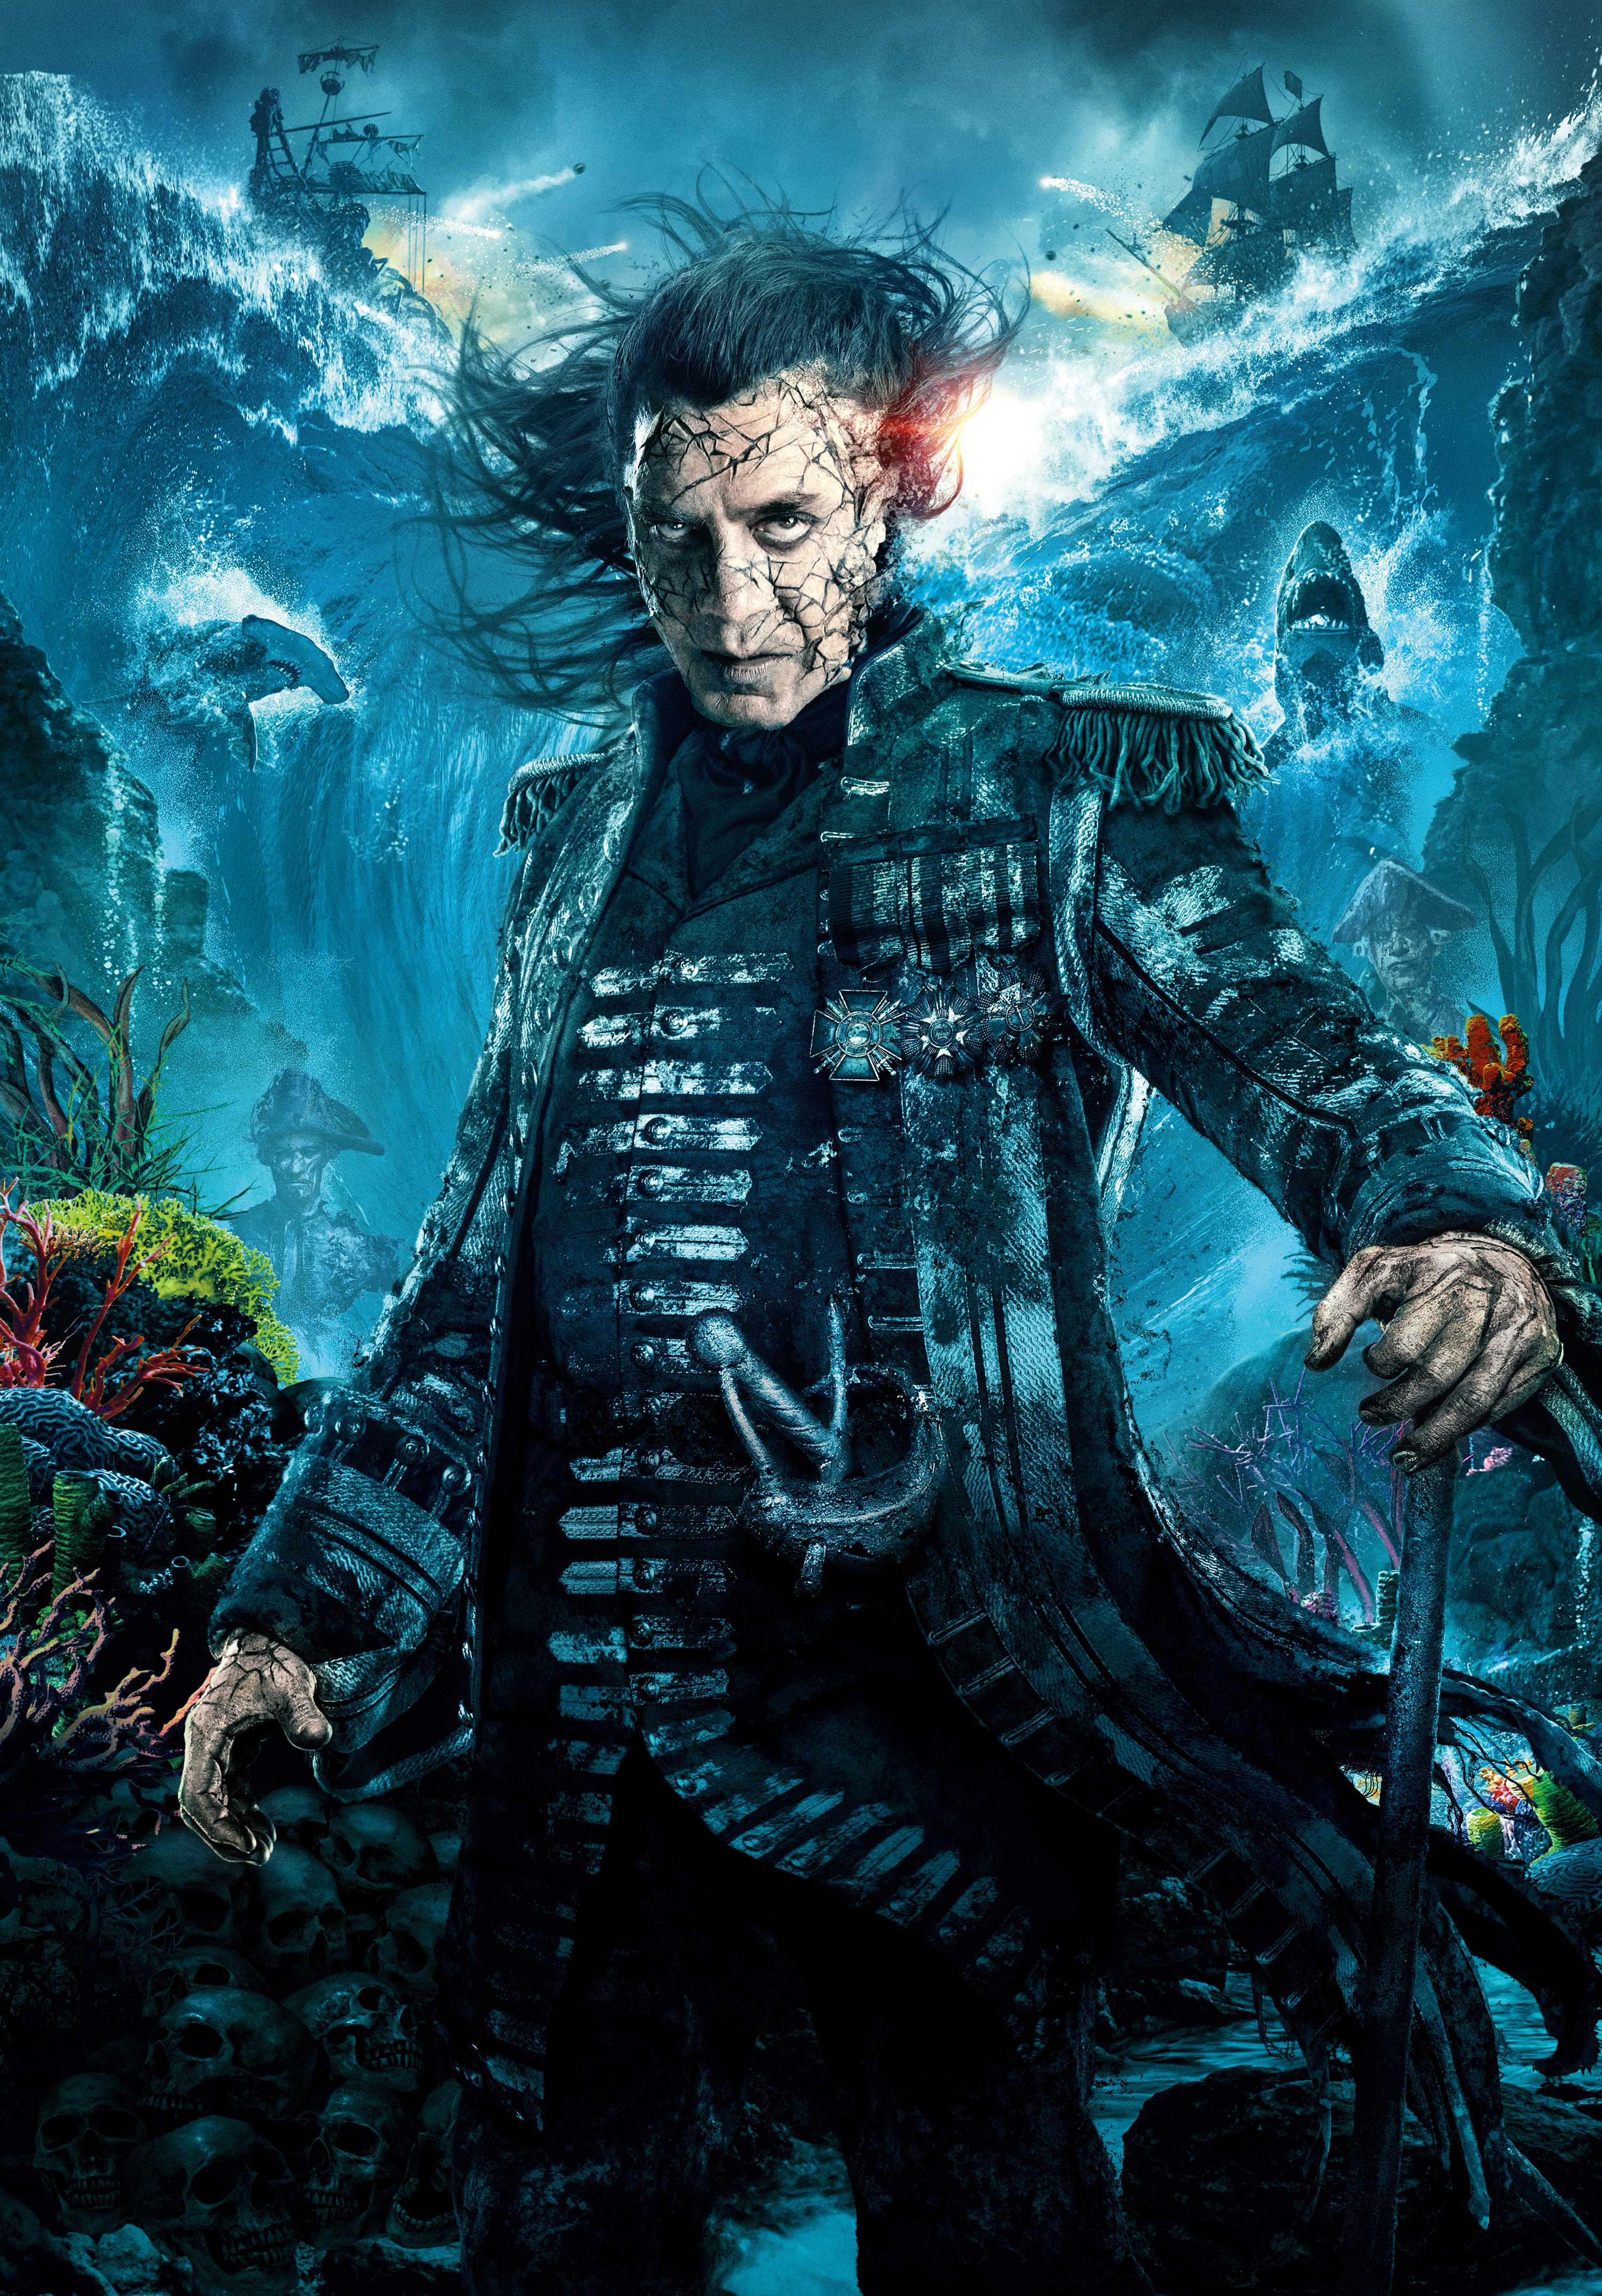 pirates of the caribbean 5 big hd posters collection